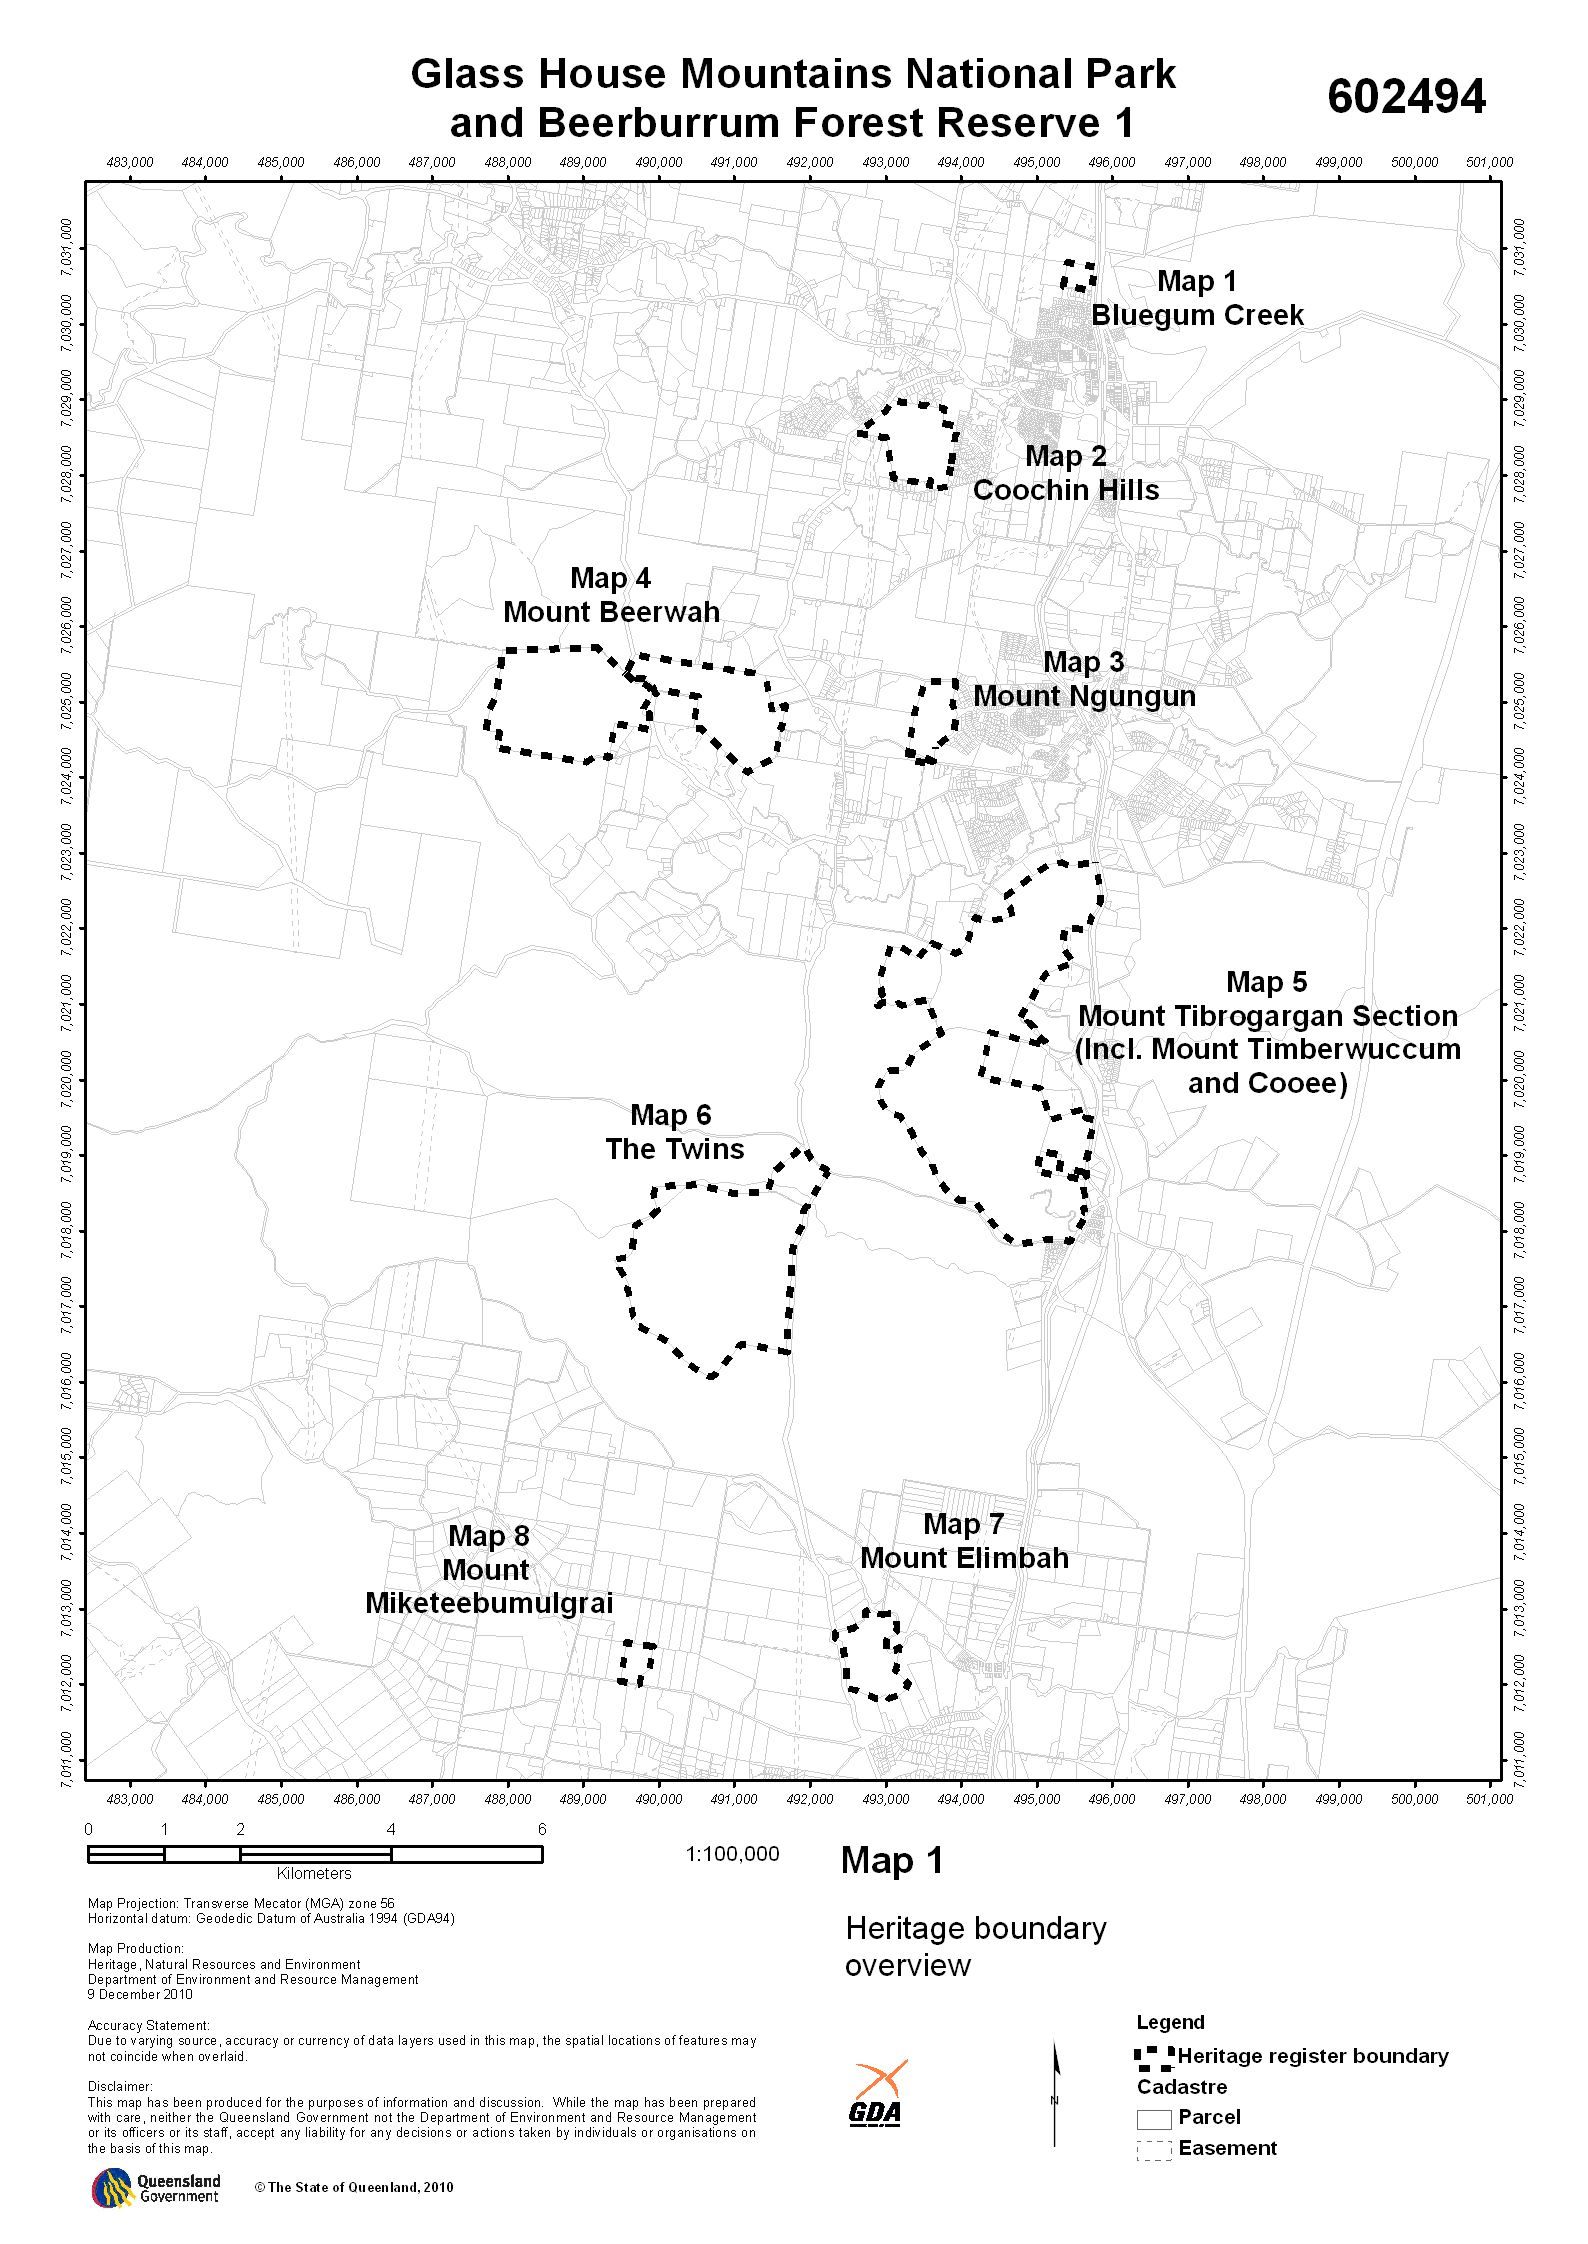 Glass House Mountains National Park and Beerburrum Forest Reserve 1